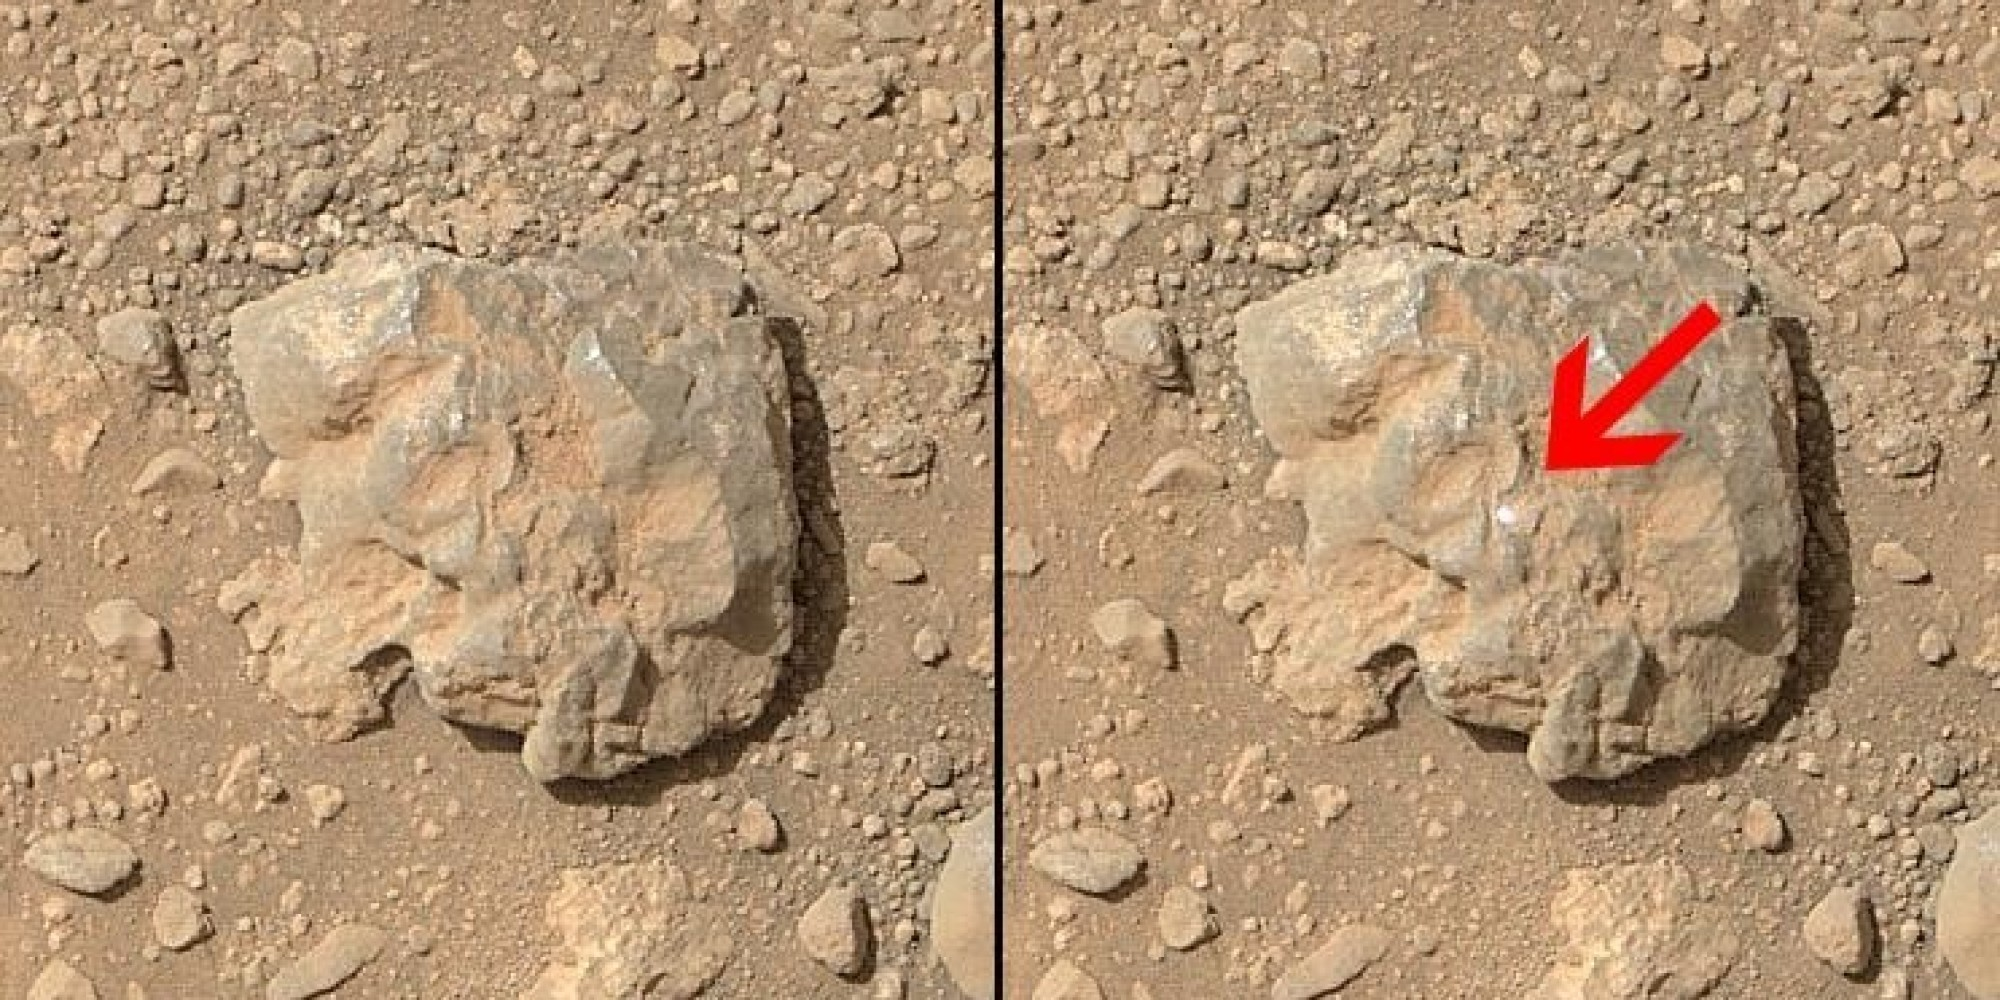 Watch NASA's Curiosity Rover Zap A Rock On Mars With A ...